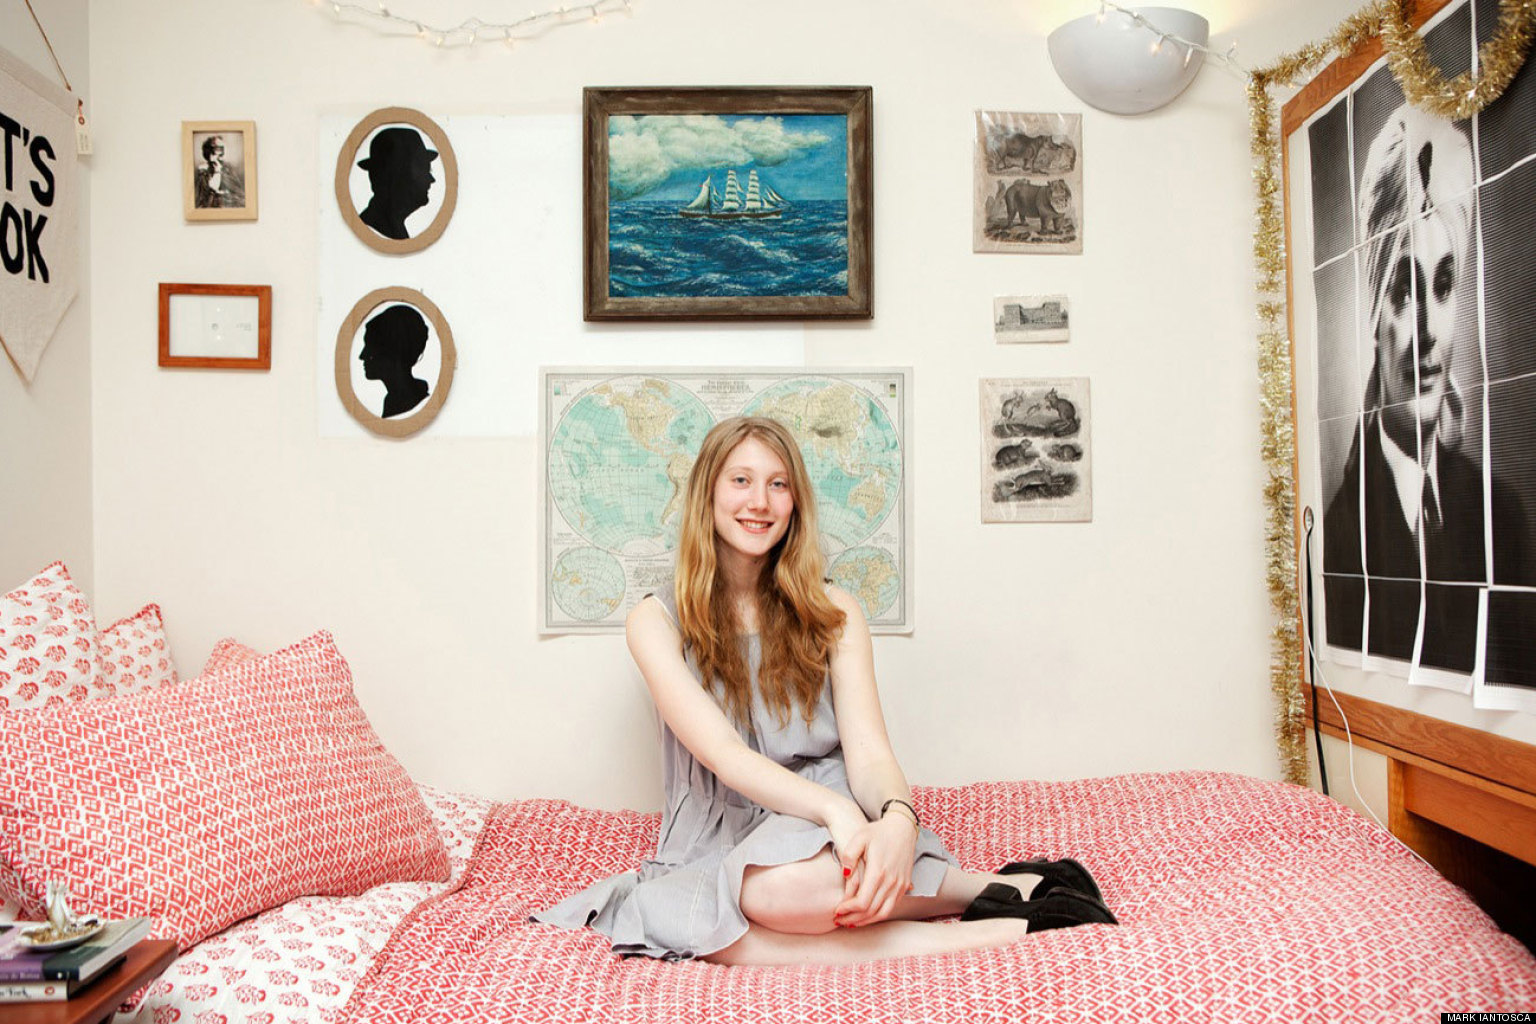 5 Must-Know Tricks for Decorating Your Dorm Room